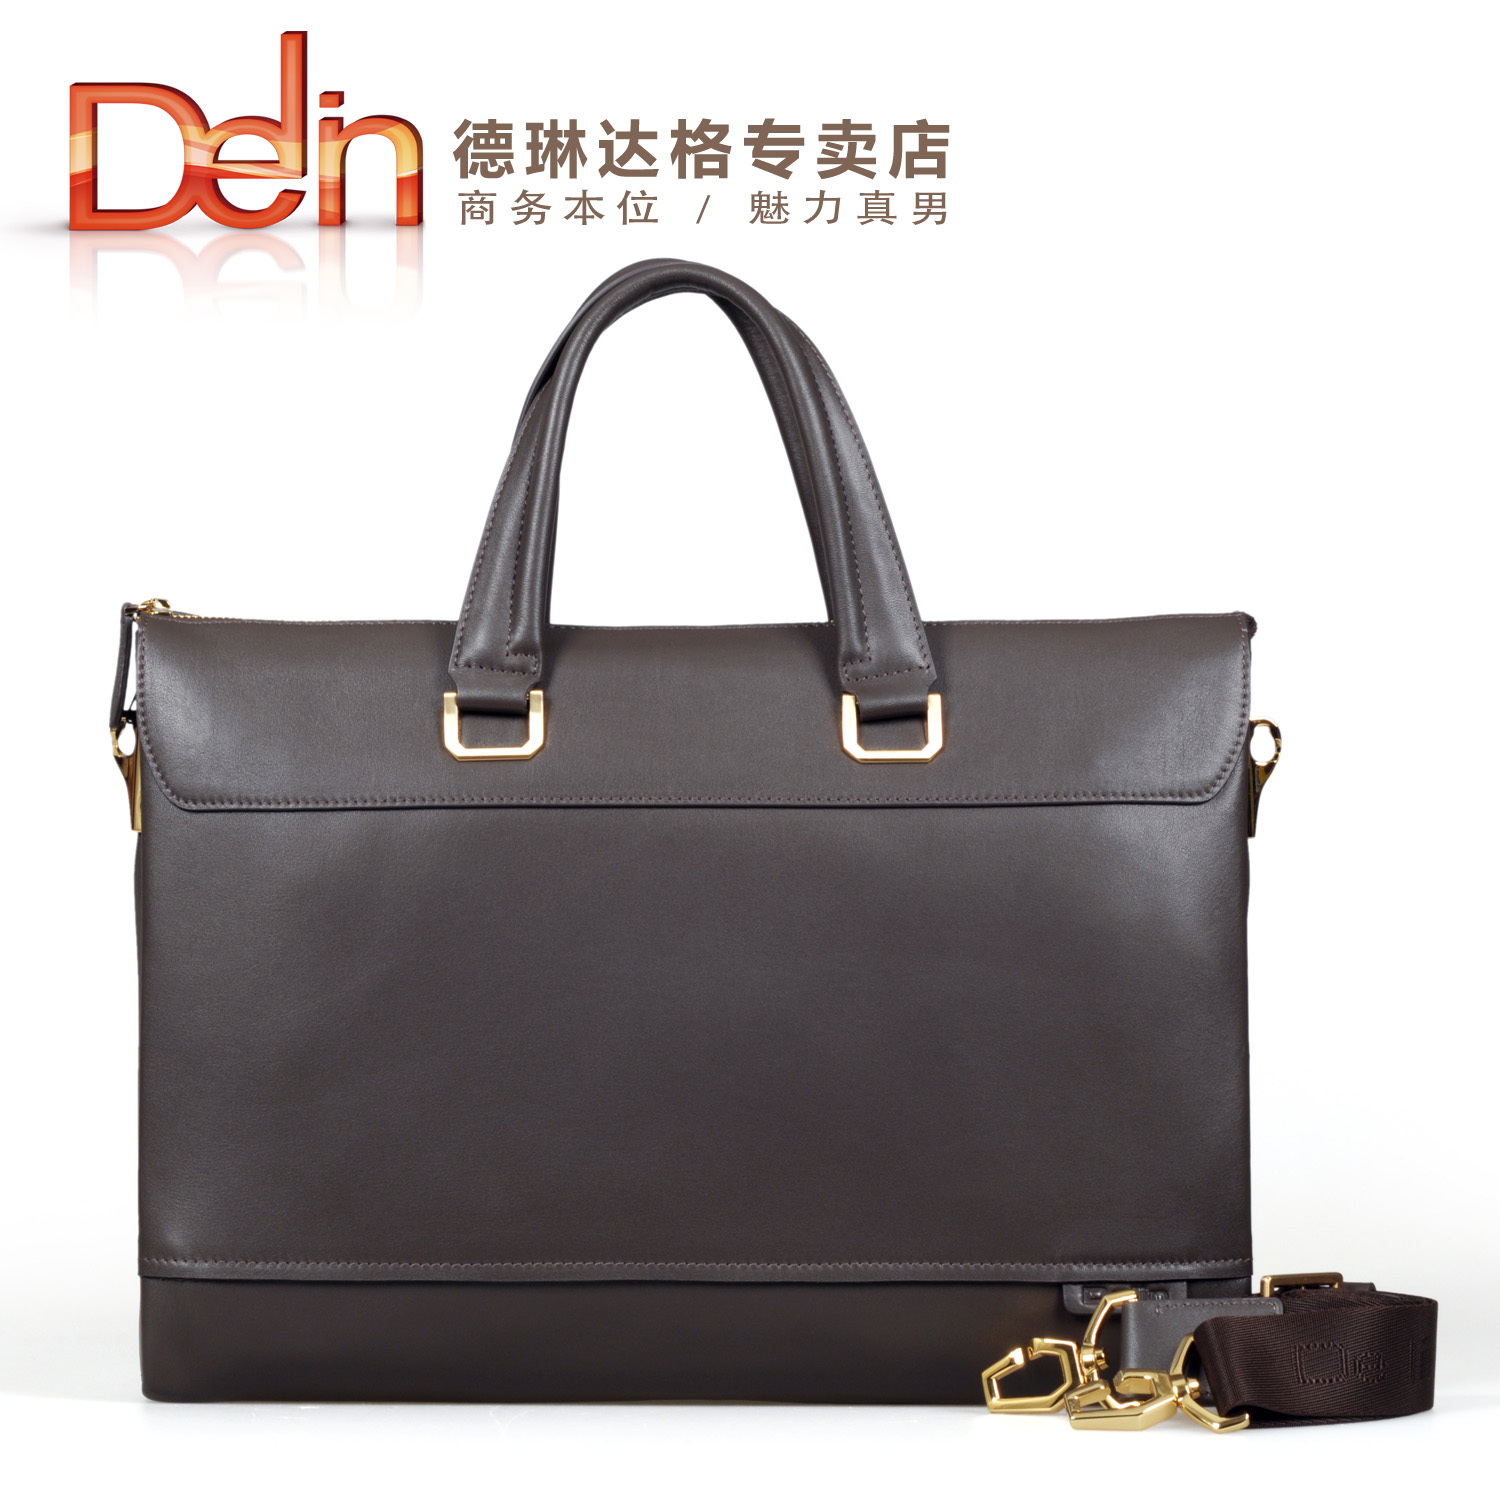 Delin fashion genuine leather briefcase business casual handbag the first layer of leather man bag laptop bag(China (Mainland))